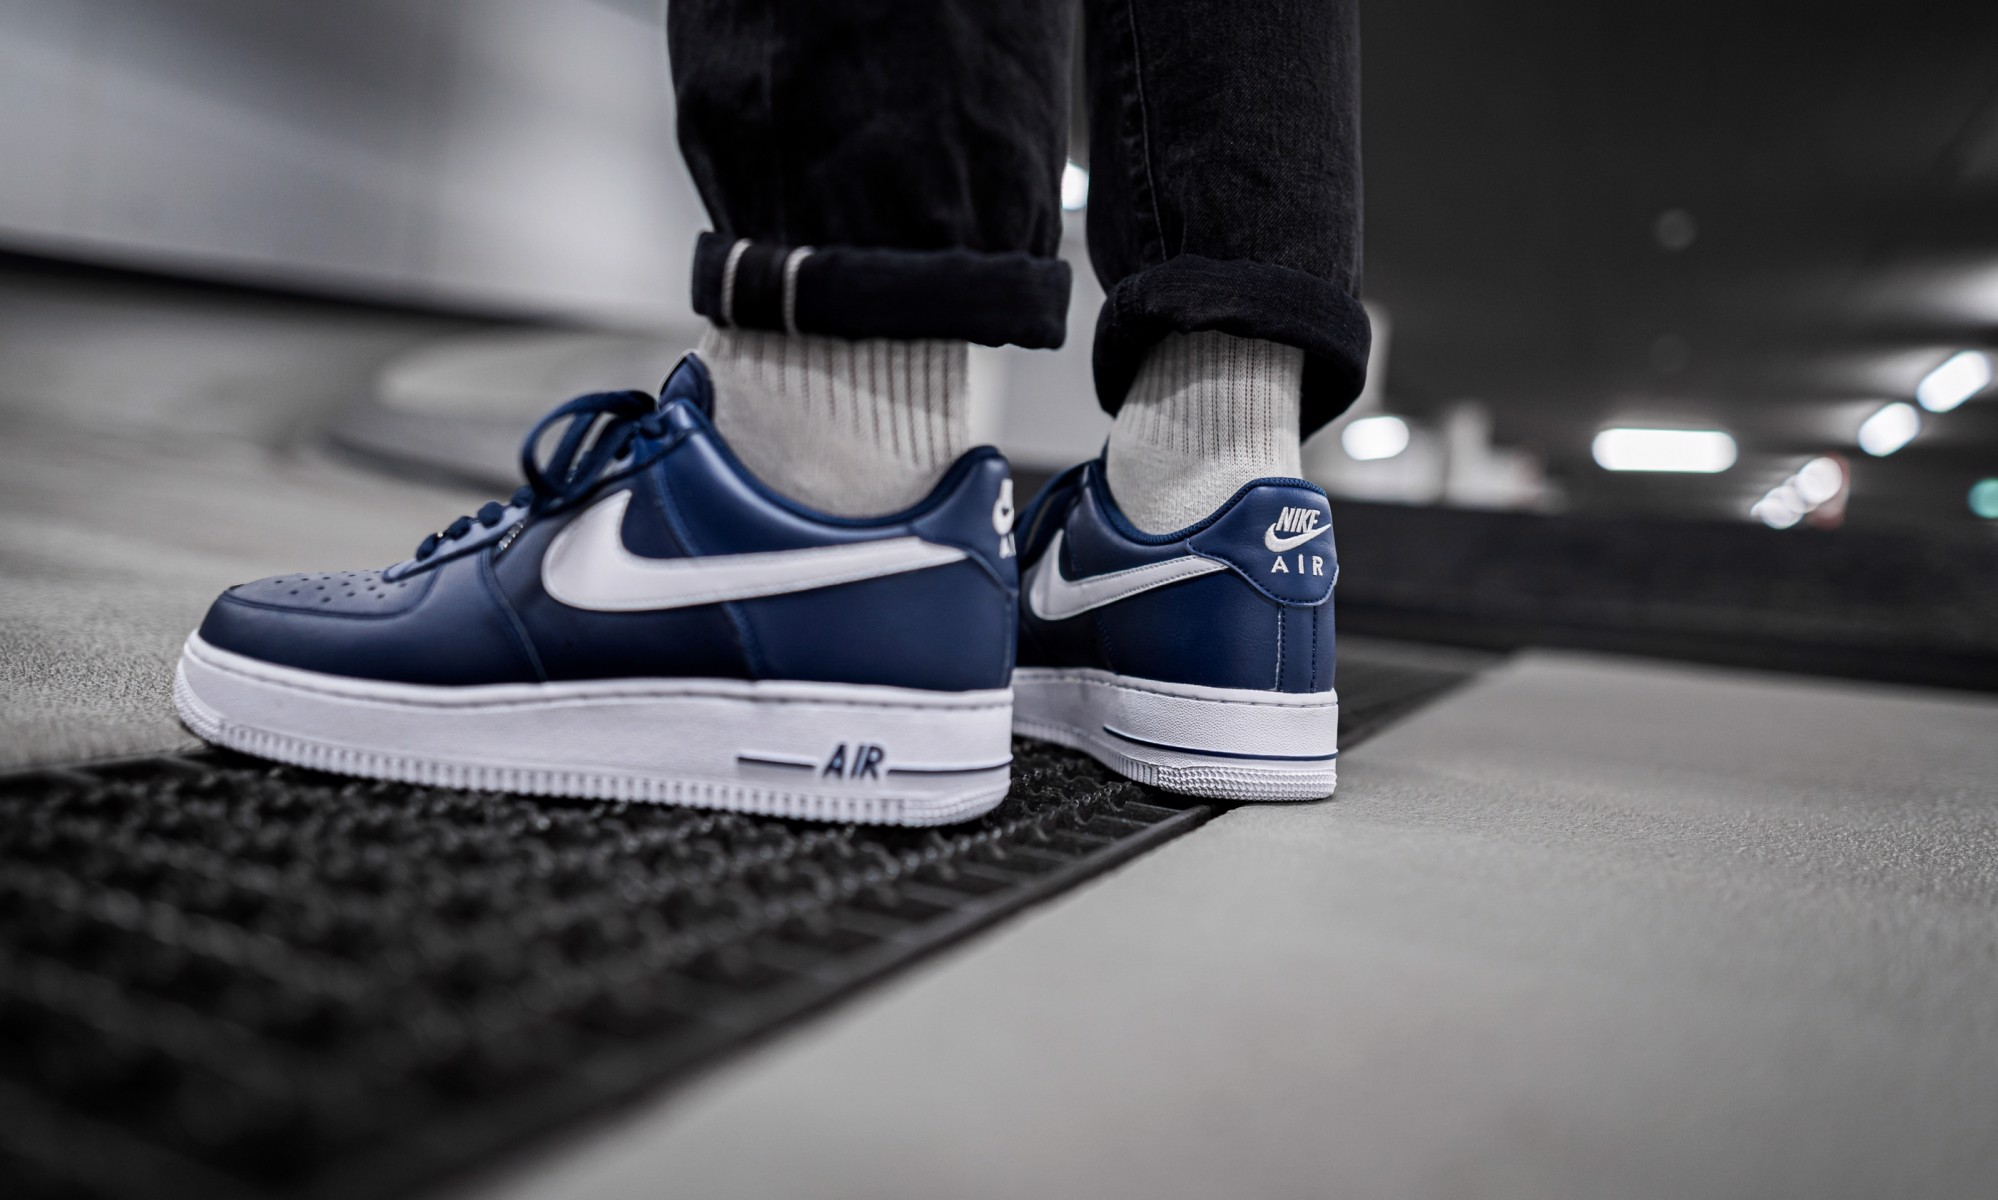 Nike Air Force 1 Low '07 AN20 'Midnight Navy' CJ0952-400